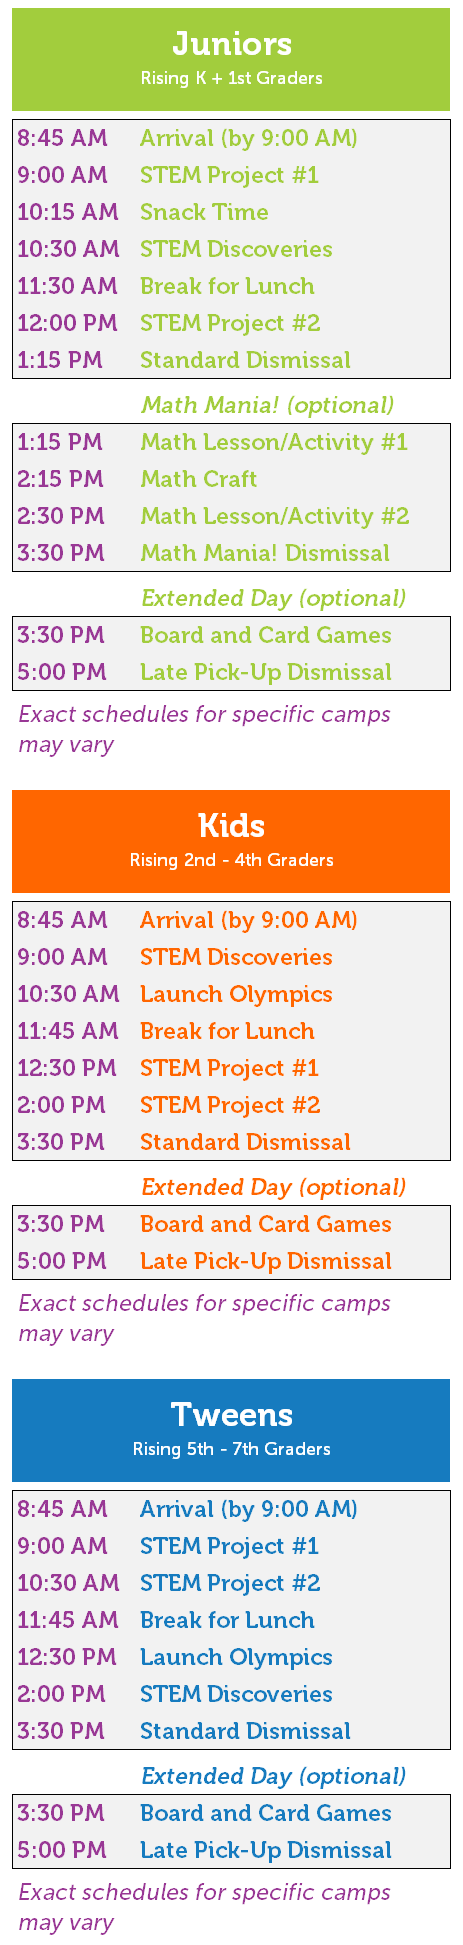 STEM Summer Camps for Kids from Kindergarten to 7th grade - Launch